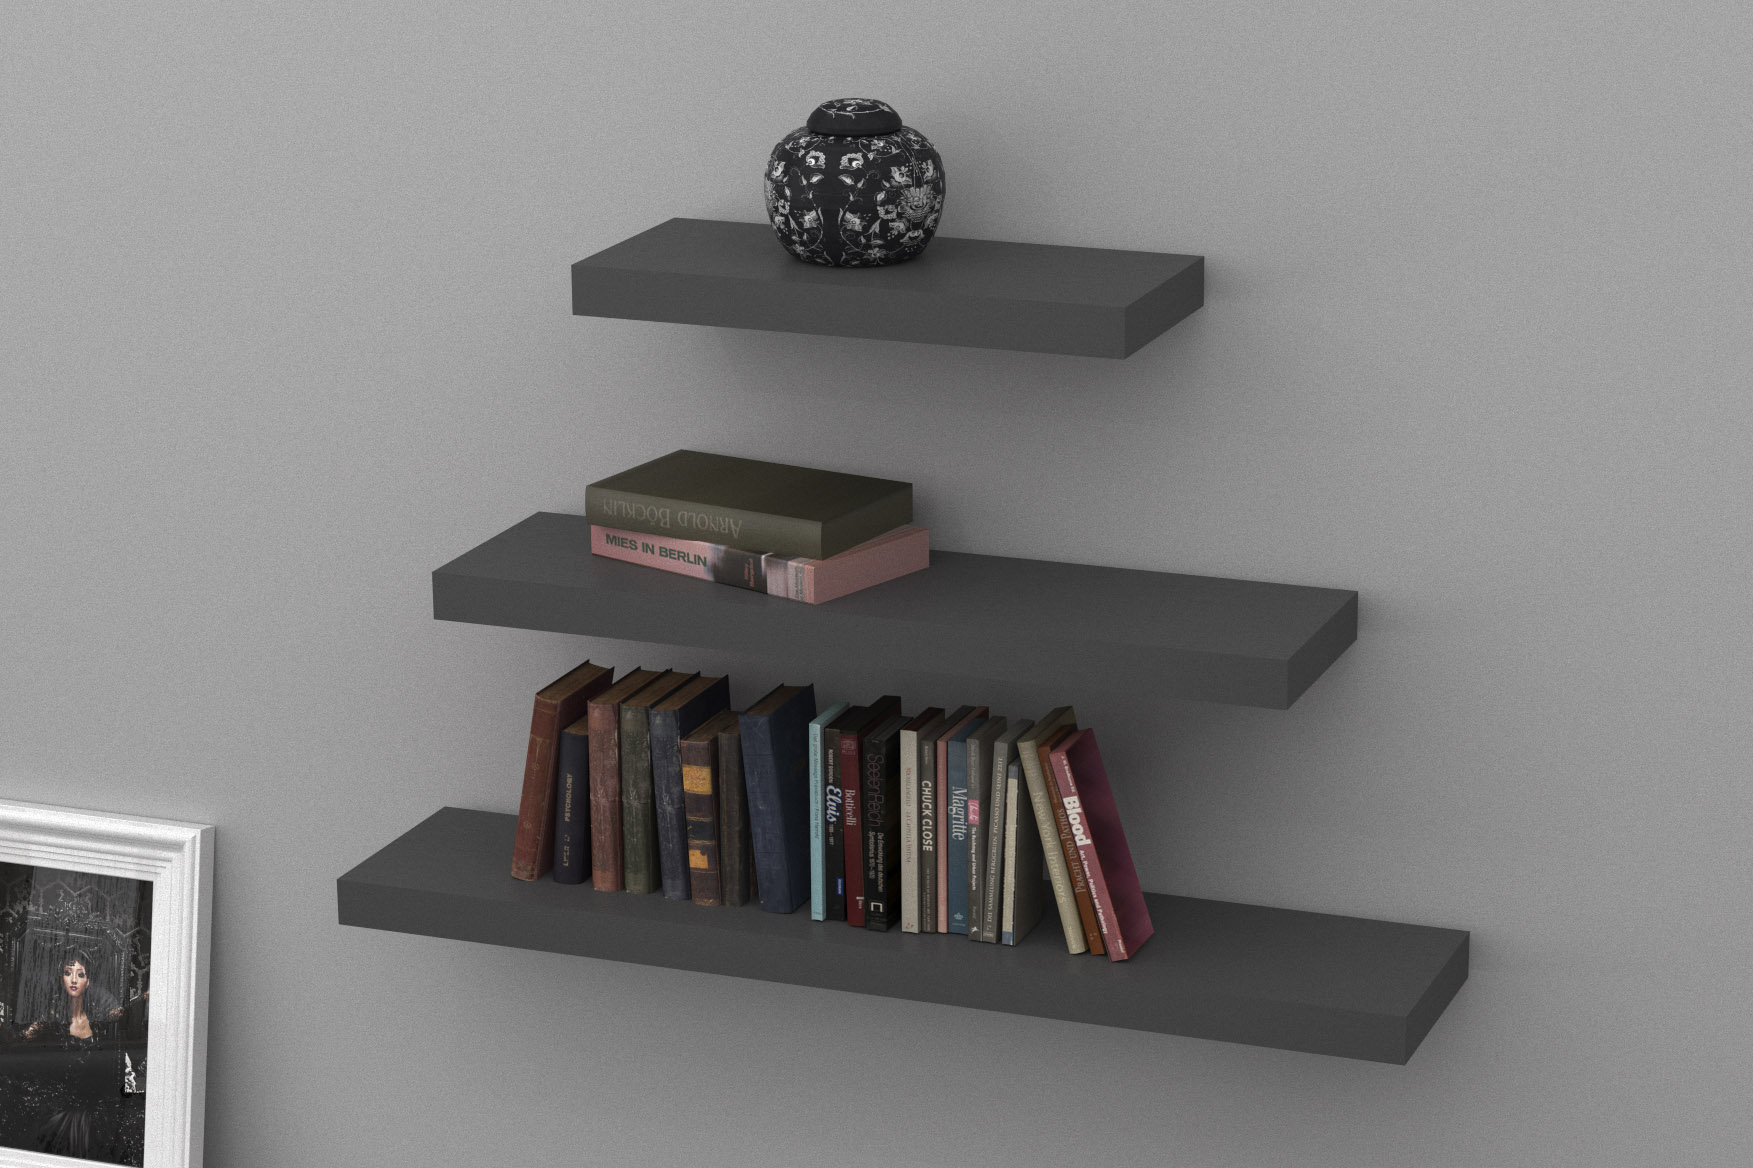 floating shelves stone grey triple mastershelf uncategorized low corner bookshelf hall hanging storage narrow shoe cabinet shallow wall unit audio shelf pottery barn brass fold